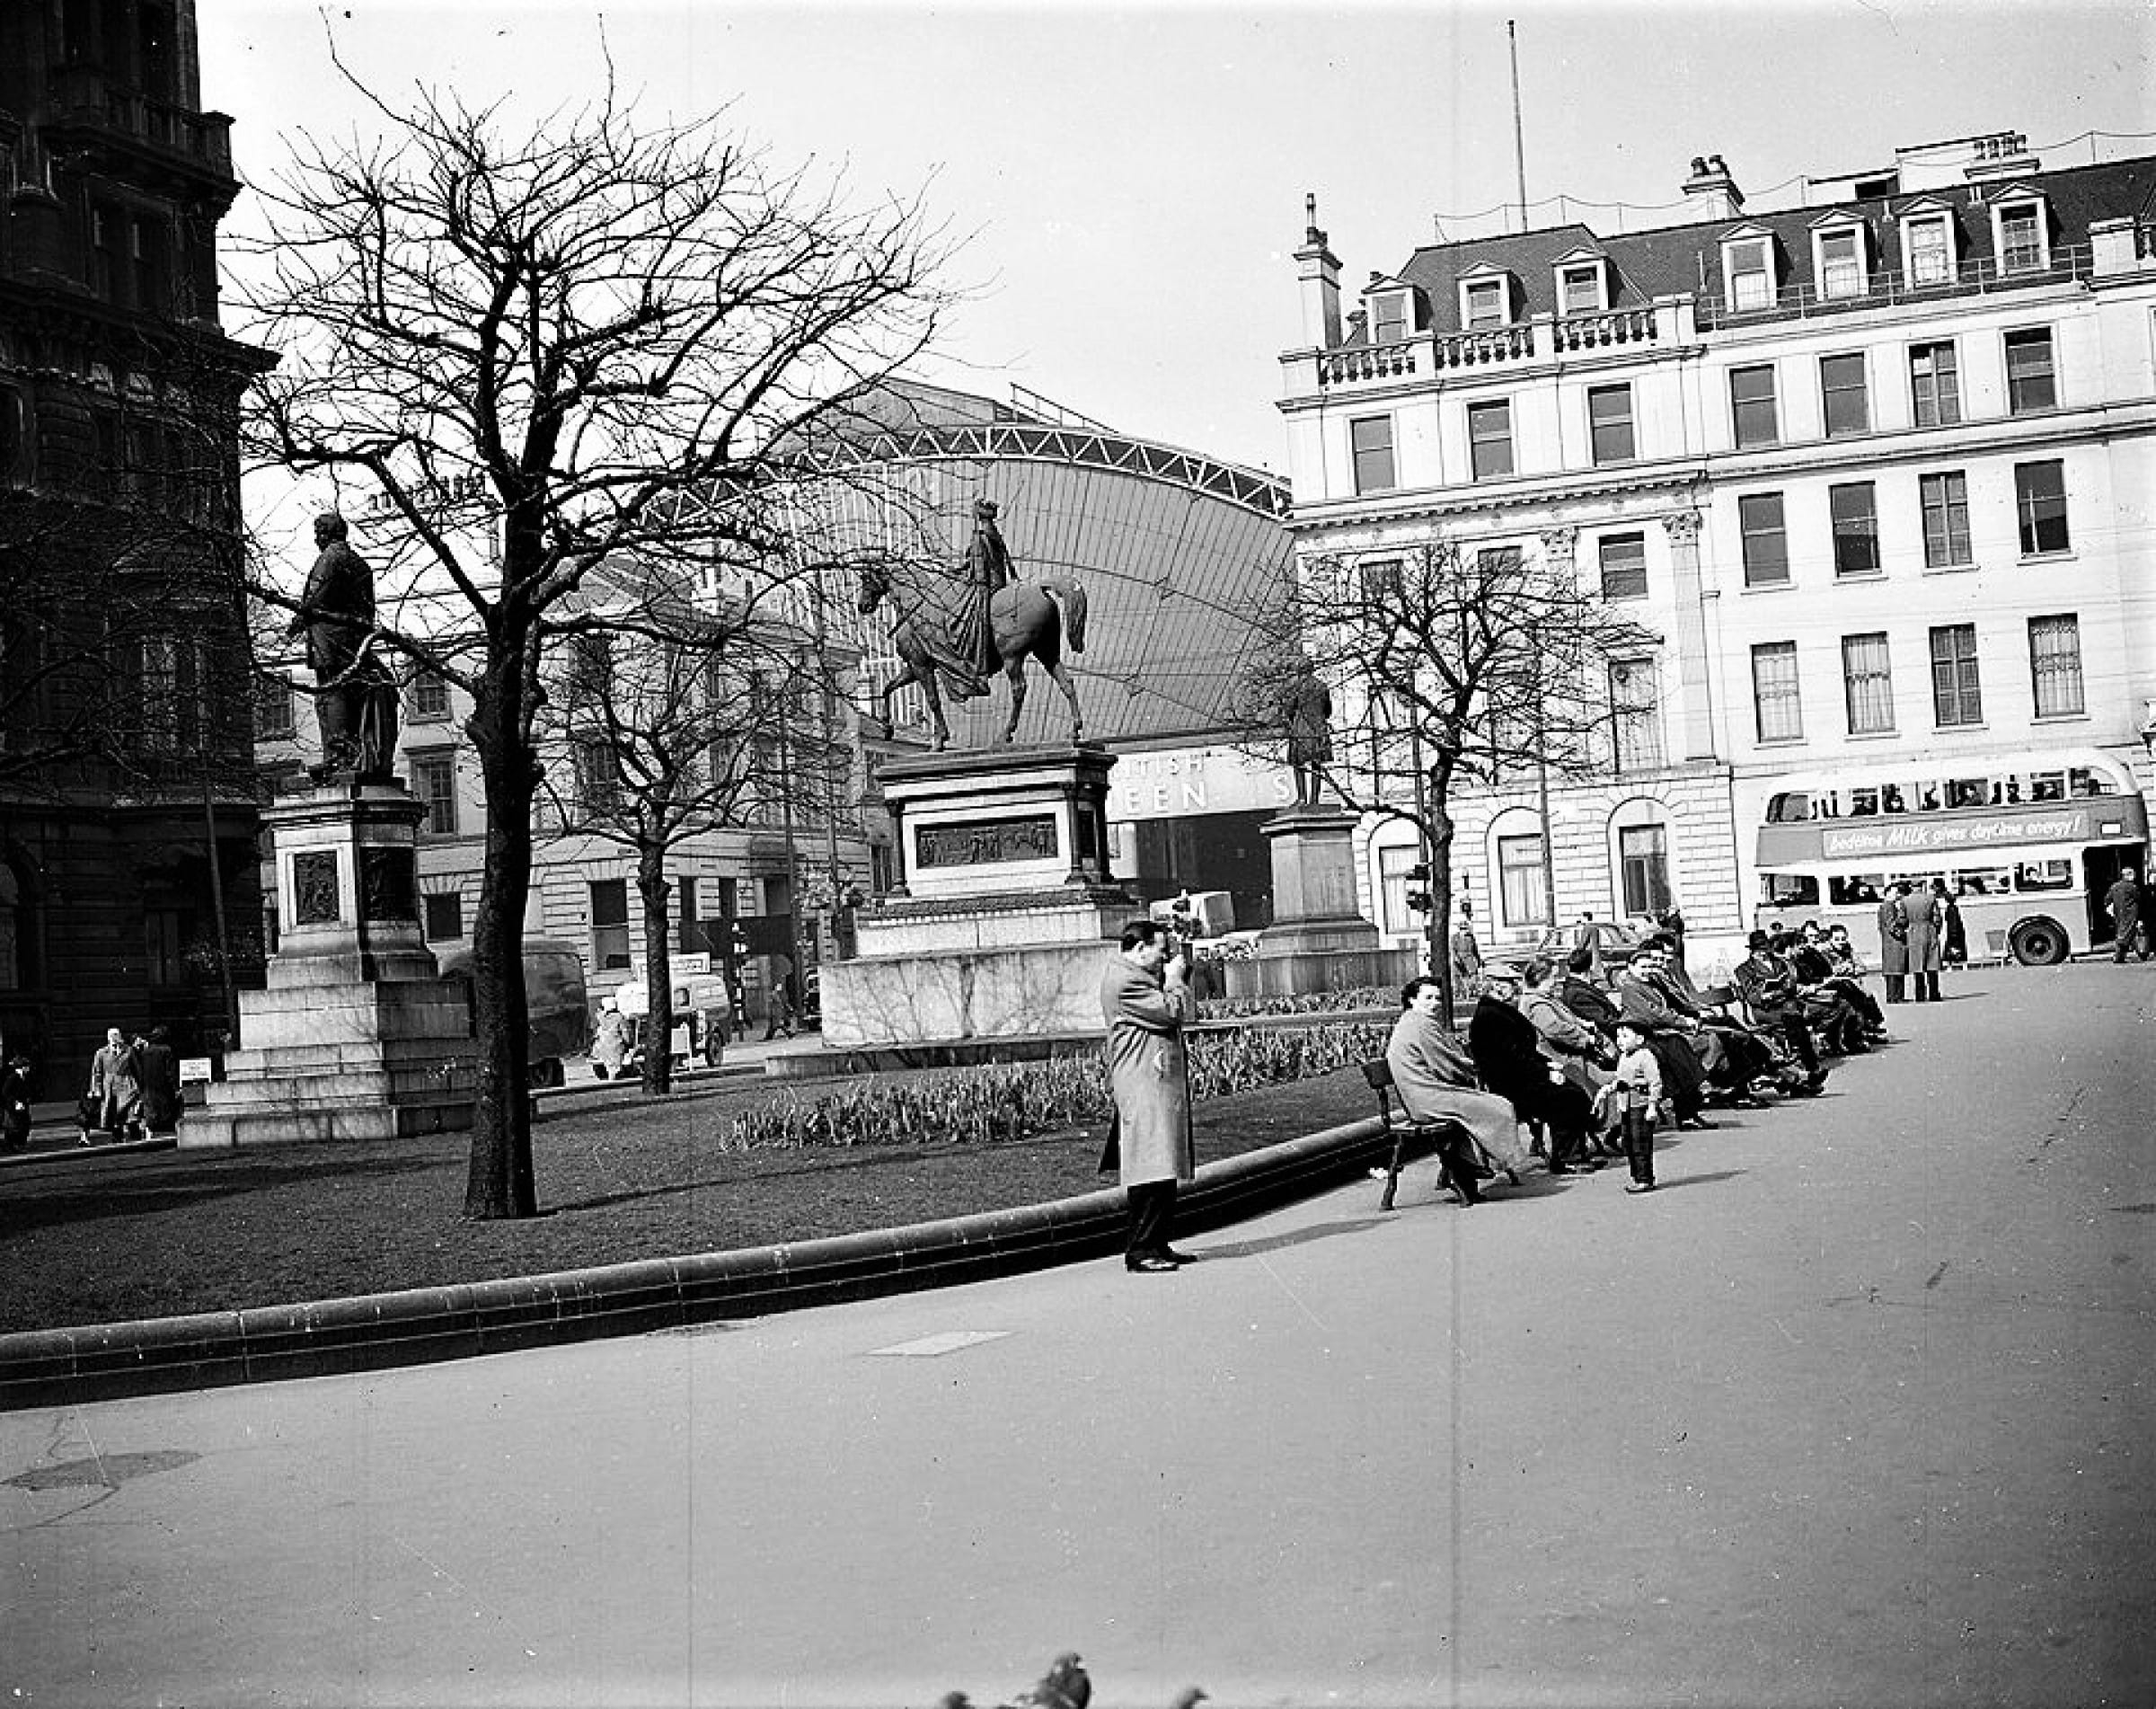 Look out, he's got a gun! (George Square 1956 (TSPL))